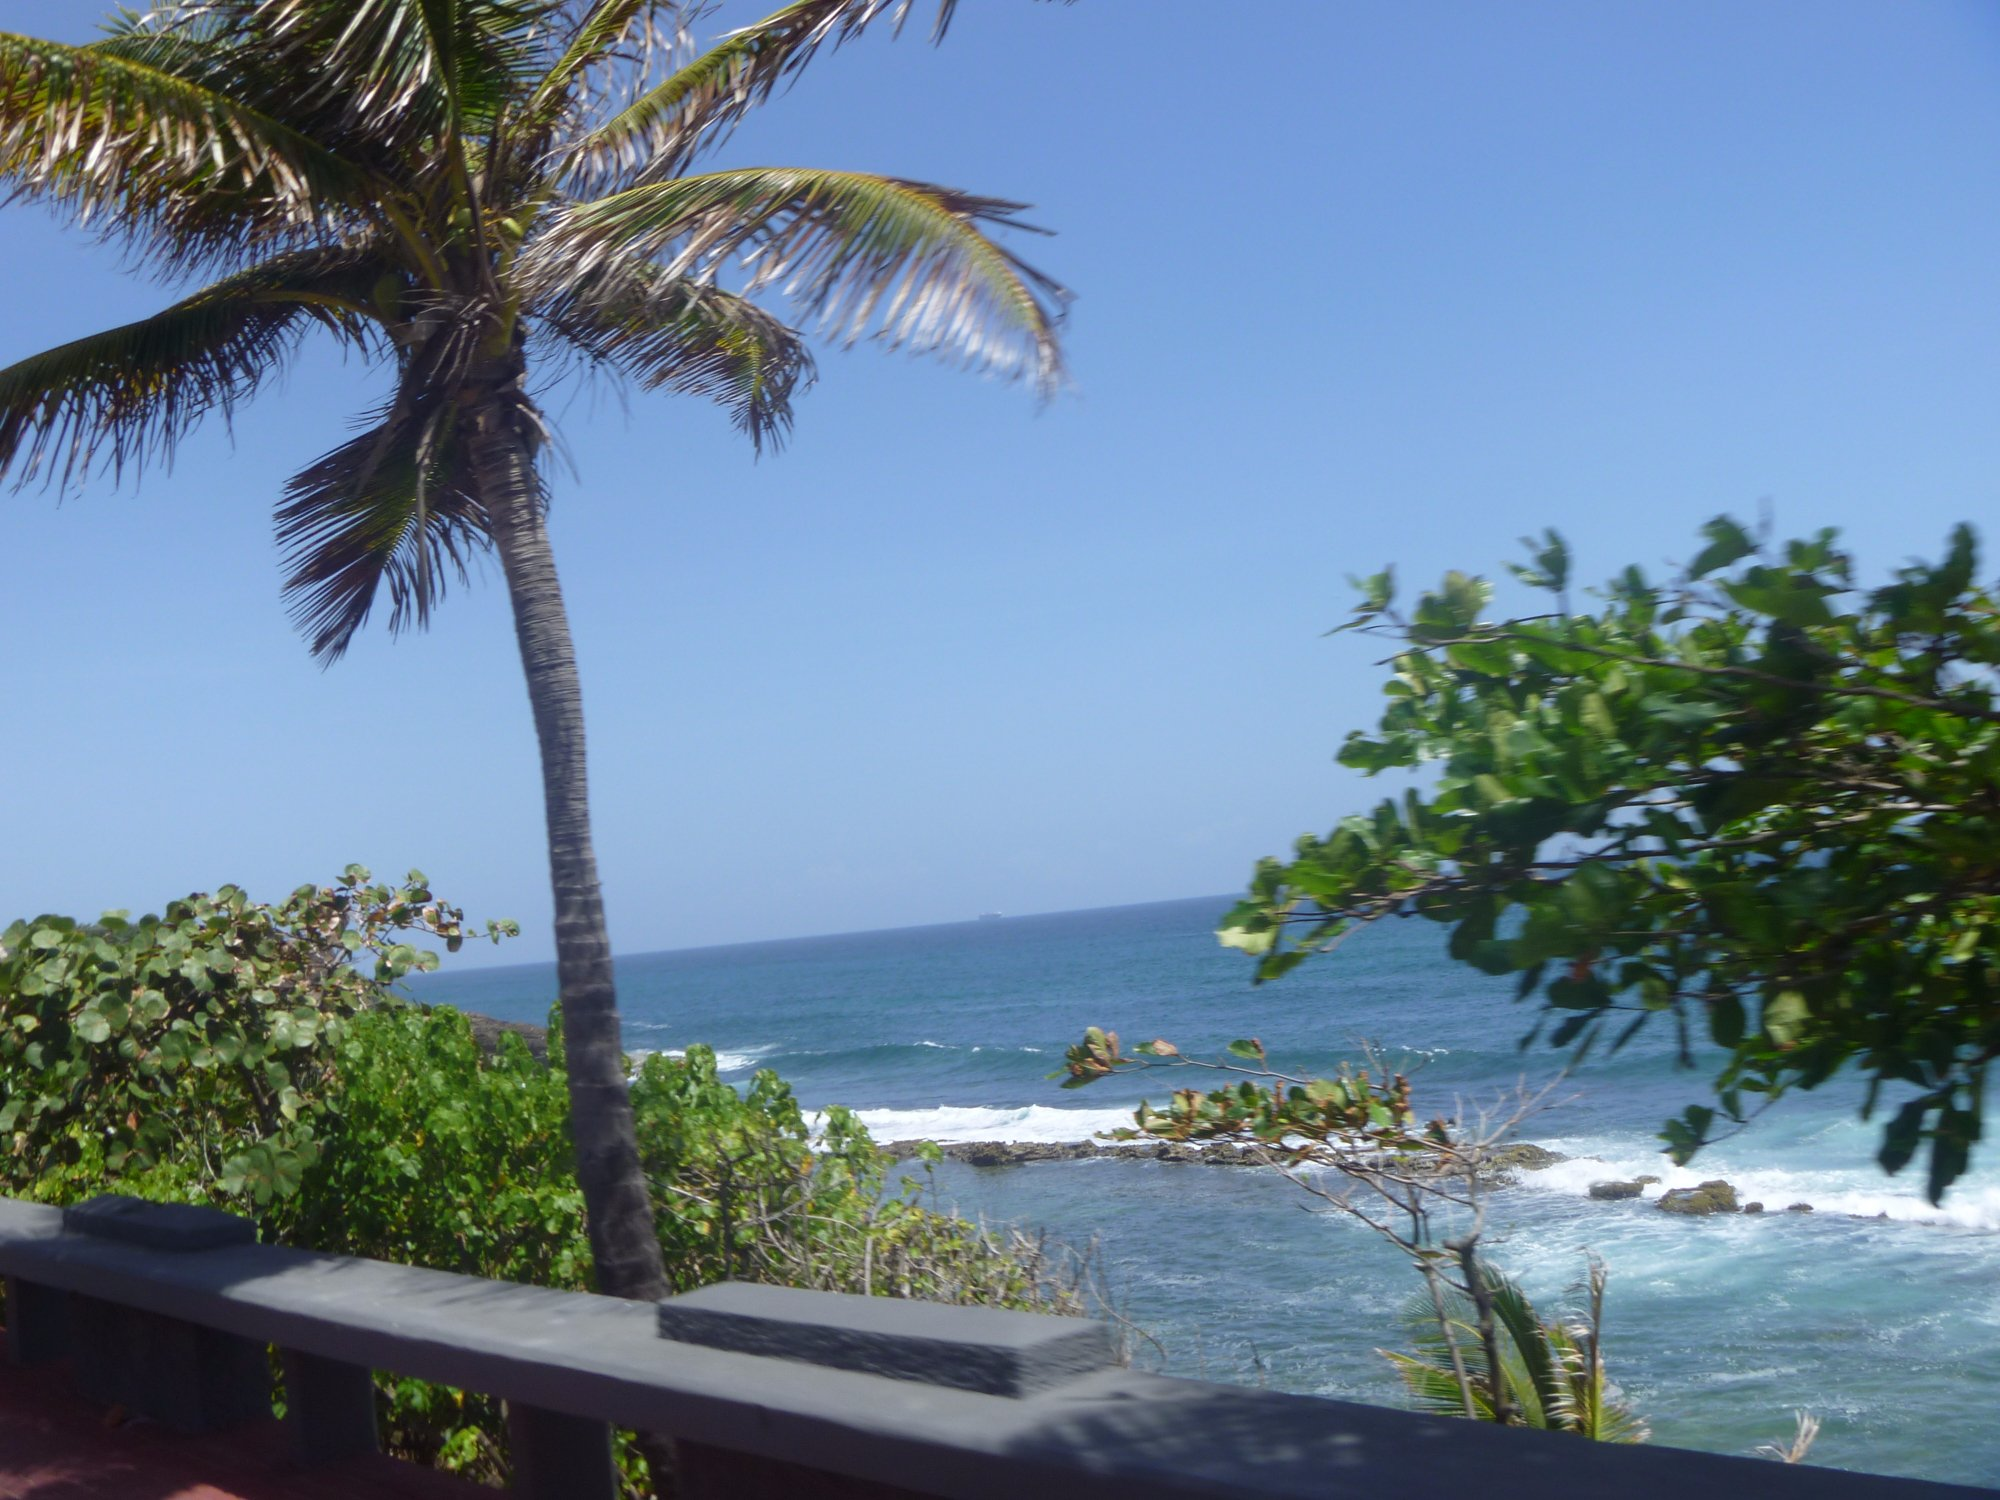 puerto rico perfect for vacations Find puerto rico vacation rentals, as well as puerto rico apartment and condo vacation rentals at perfectplacescom.